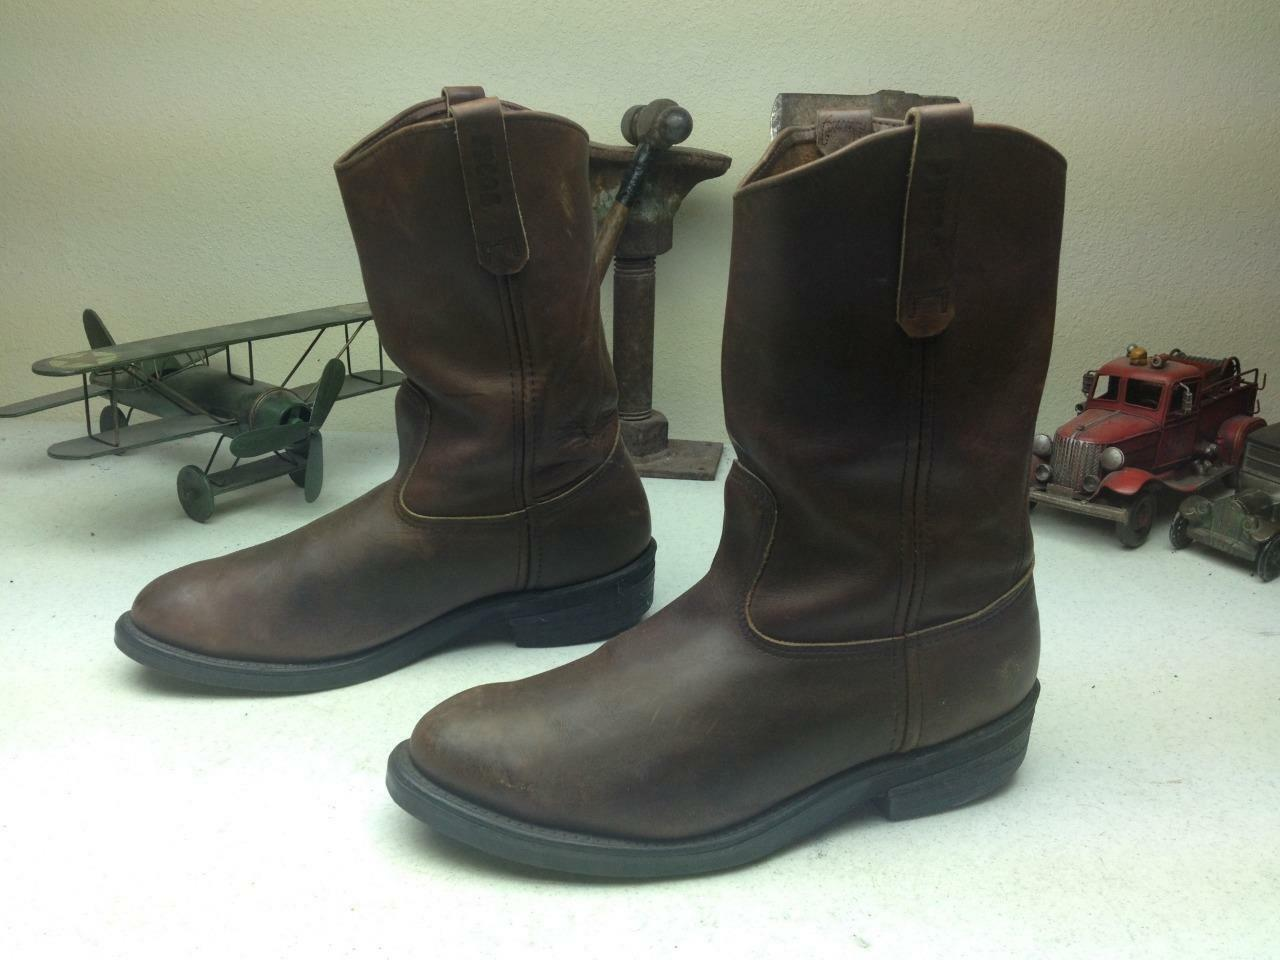 VINTAGE PECOS RED WING MADE IN USA USA USA BROWN ENGINEER WORK BOOTS SIZE 10.5 D b066c3